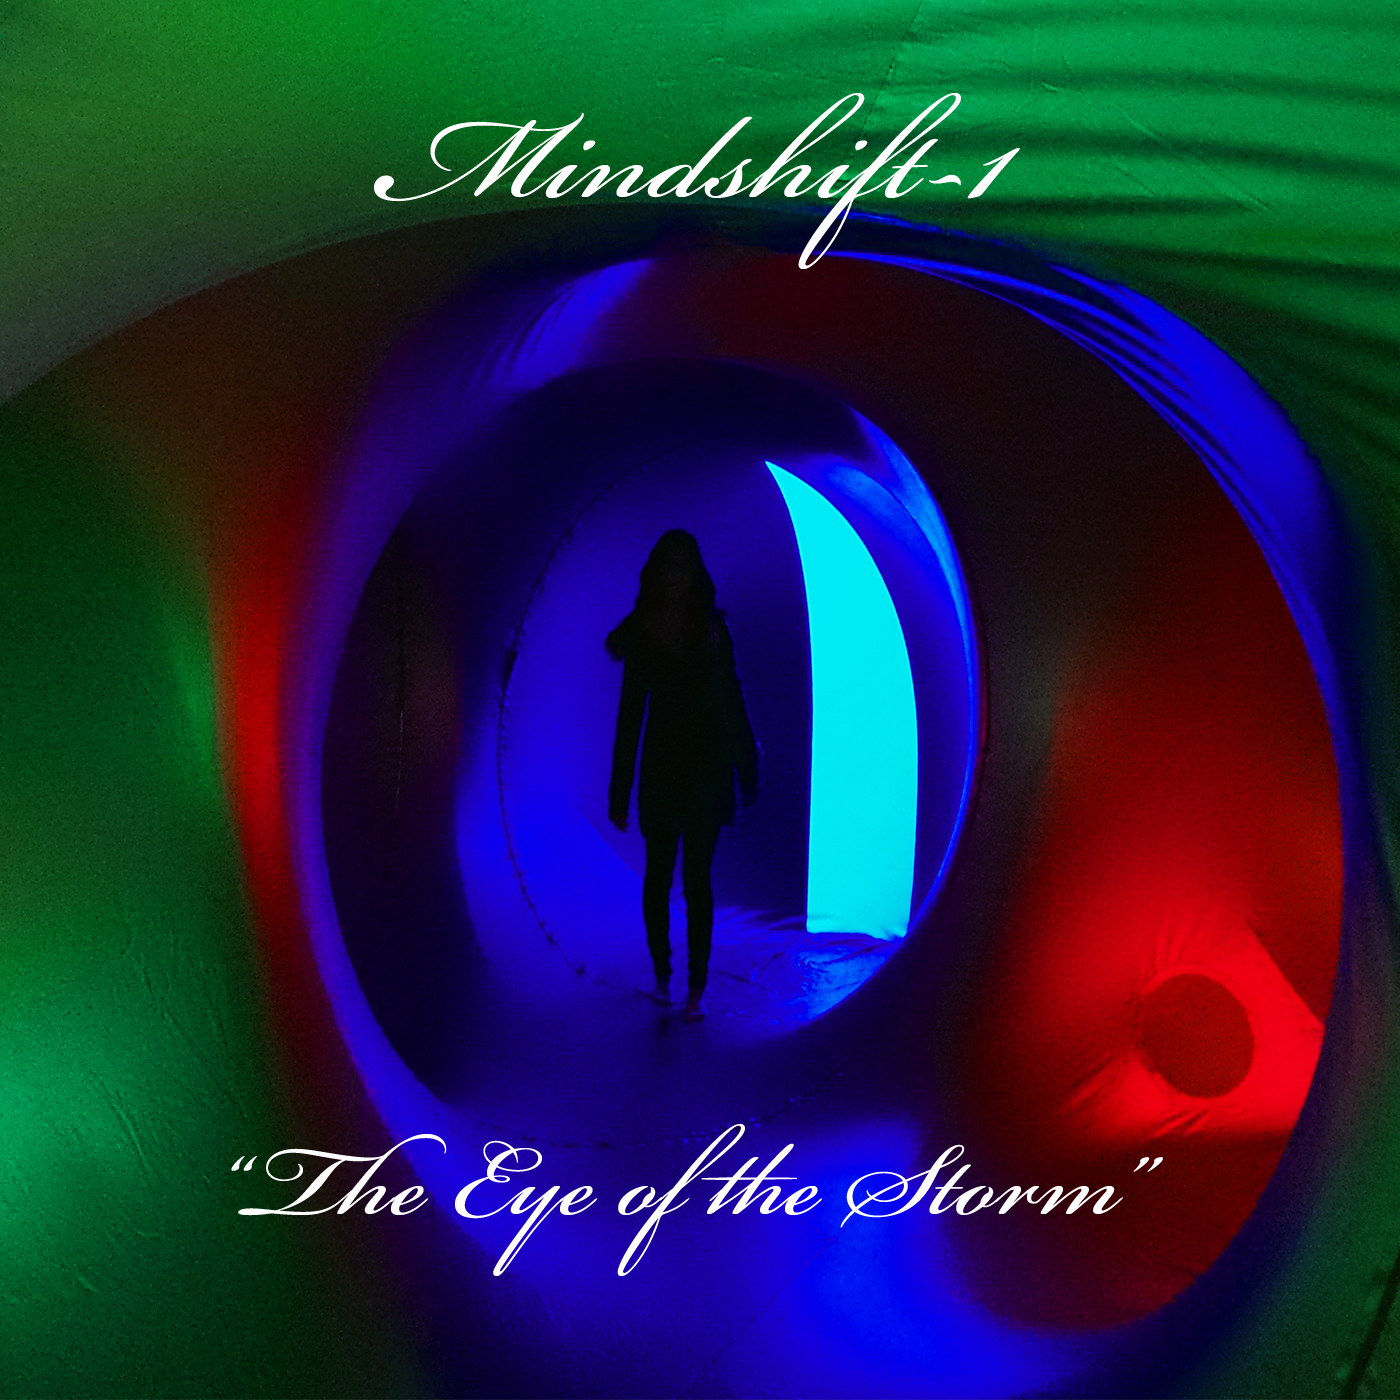 Mindshift-1-The Eye of the Storm-3 copy